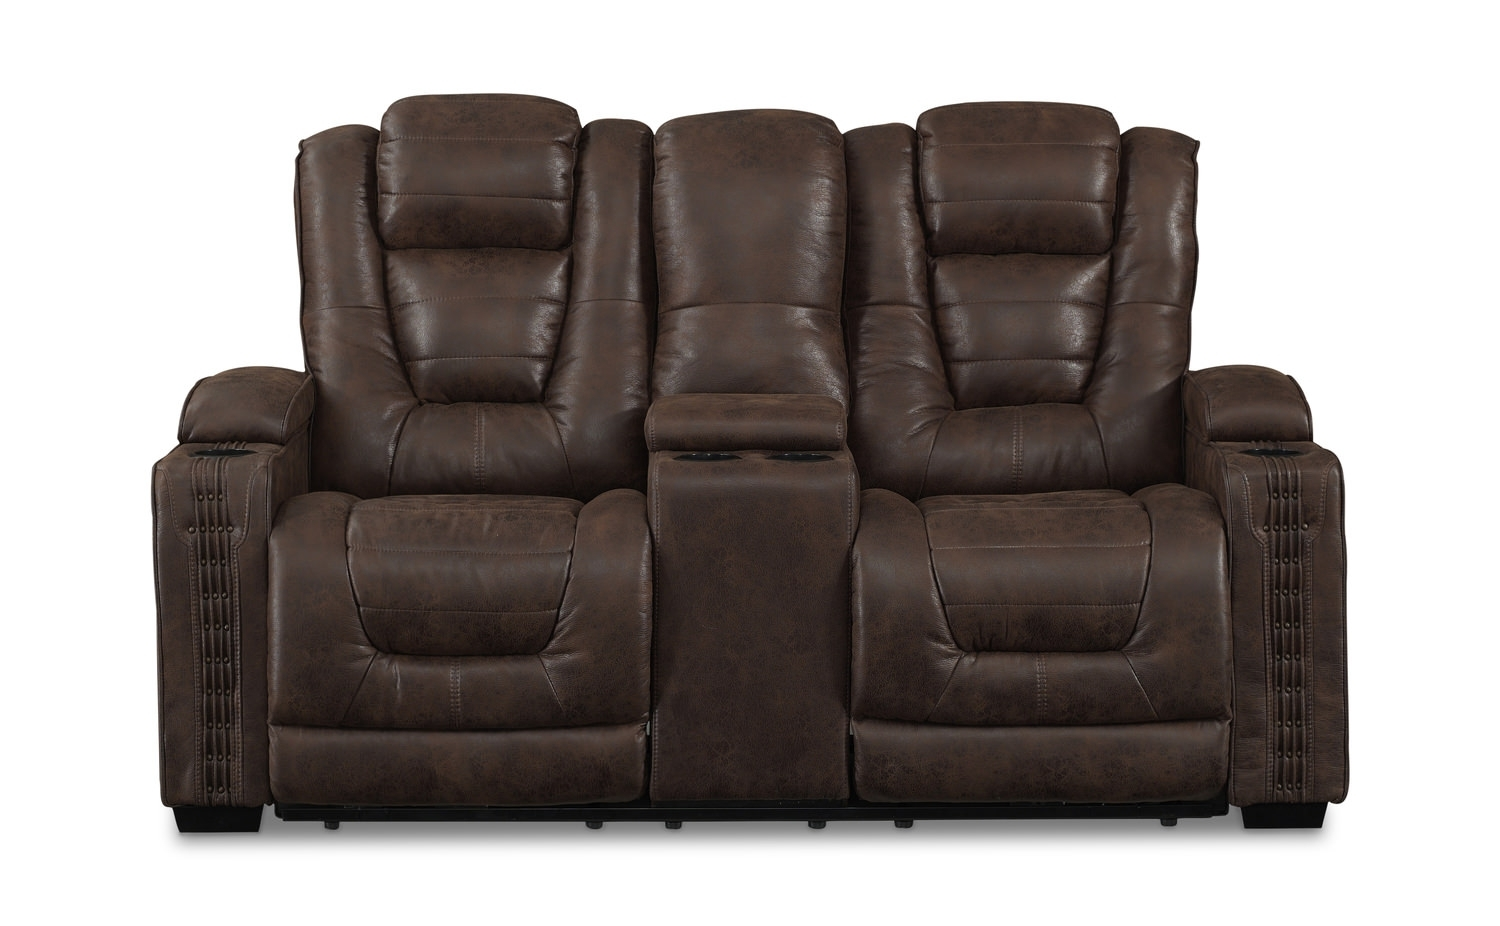 Morph Power Reclining Loveseat With Console | Hom Furniture for Denali Light Grey 6 Piece Reclining Sectionals With 2 Power Headrests (Image 23 of 30)